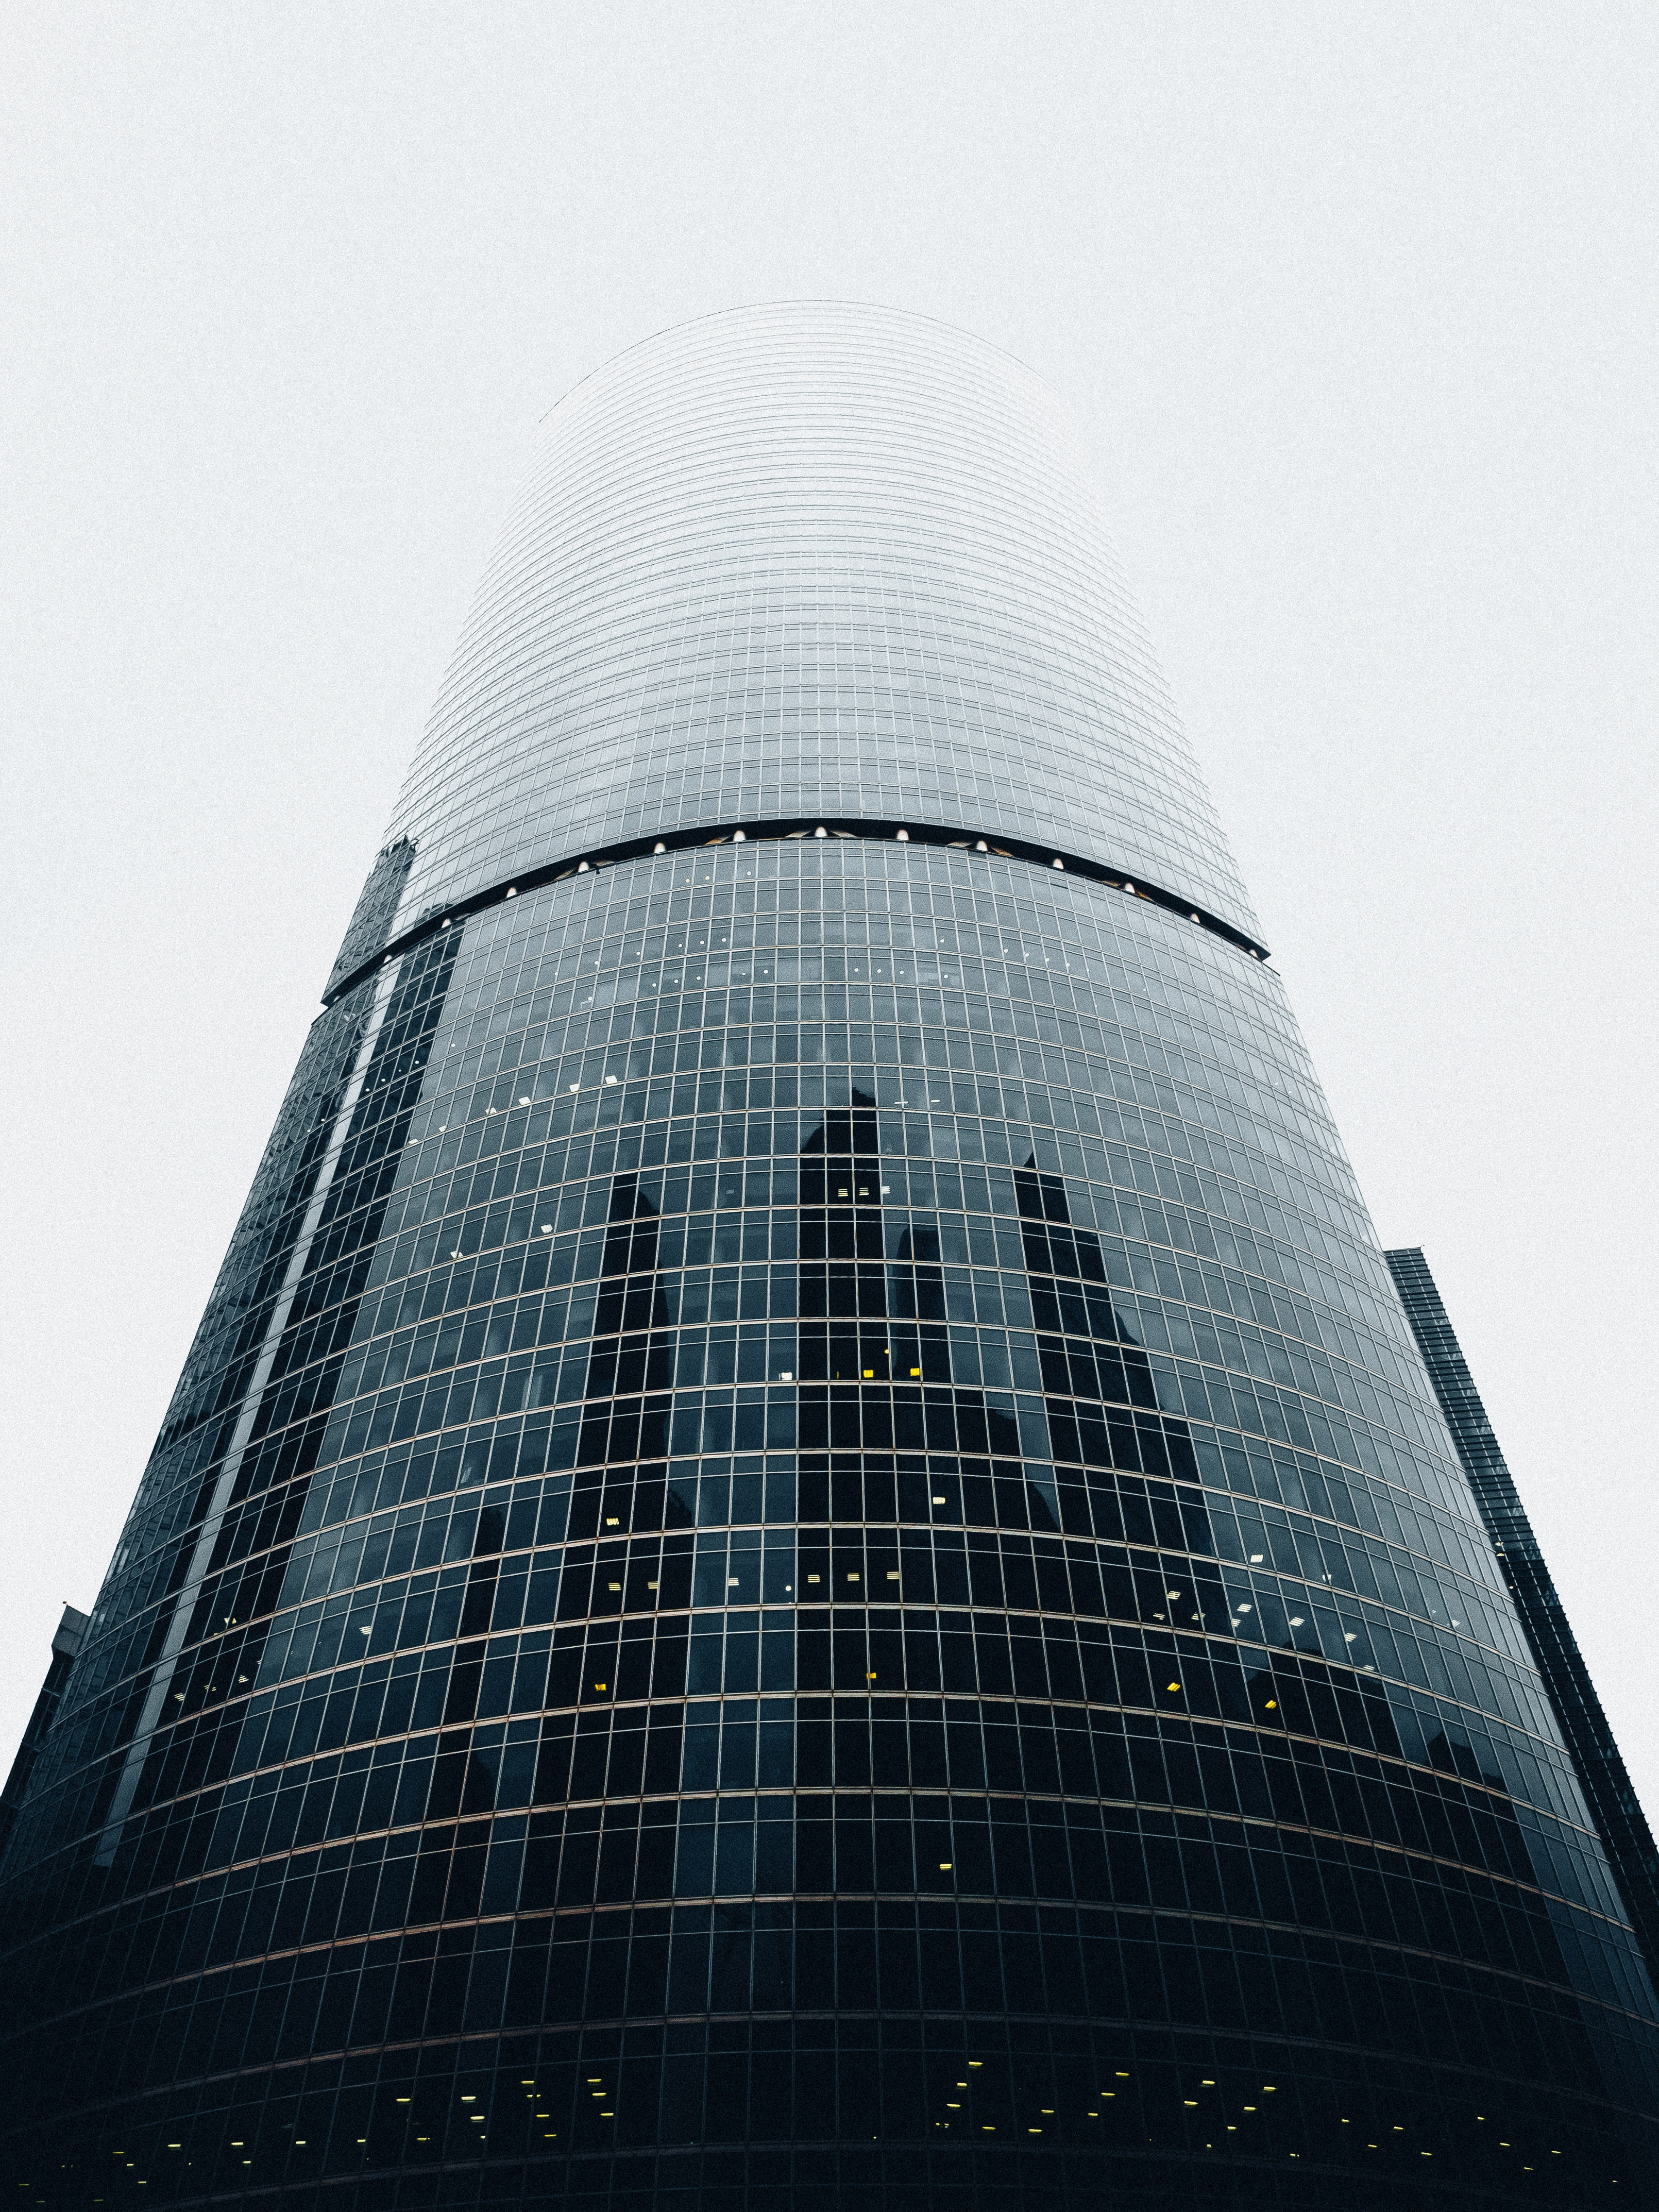 photo of high-rise building